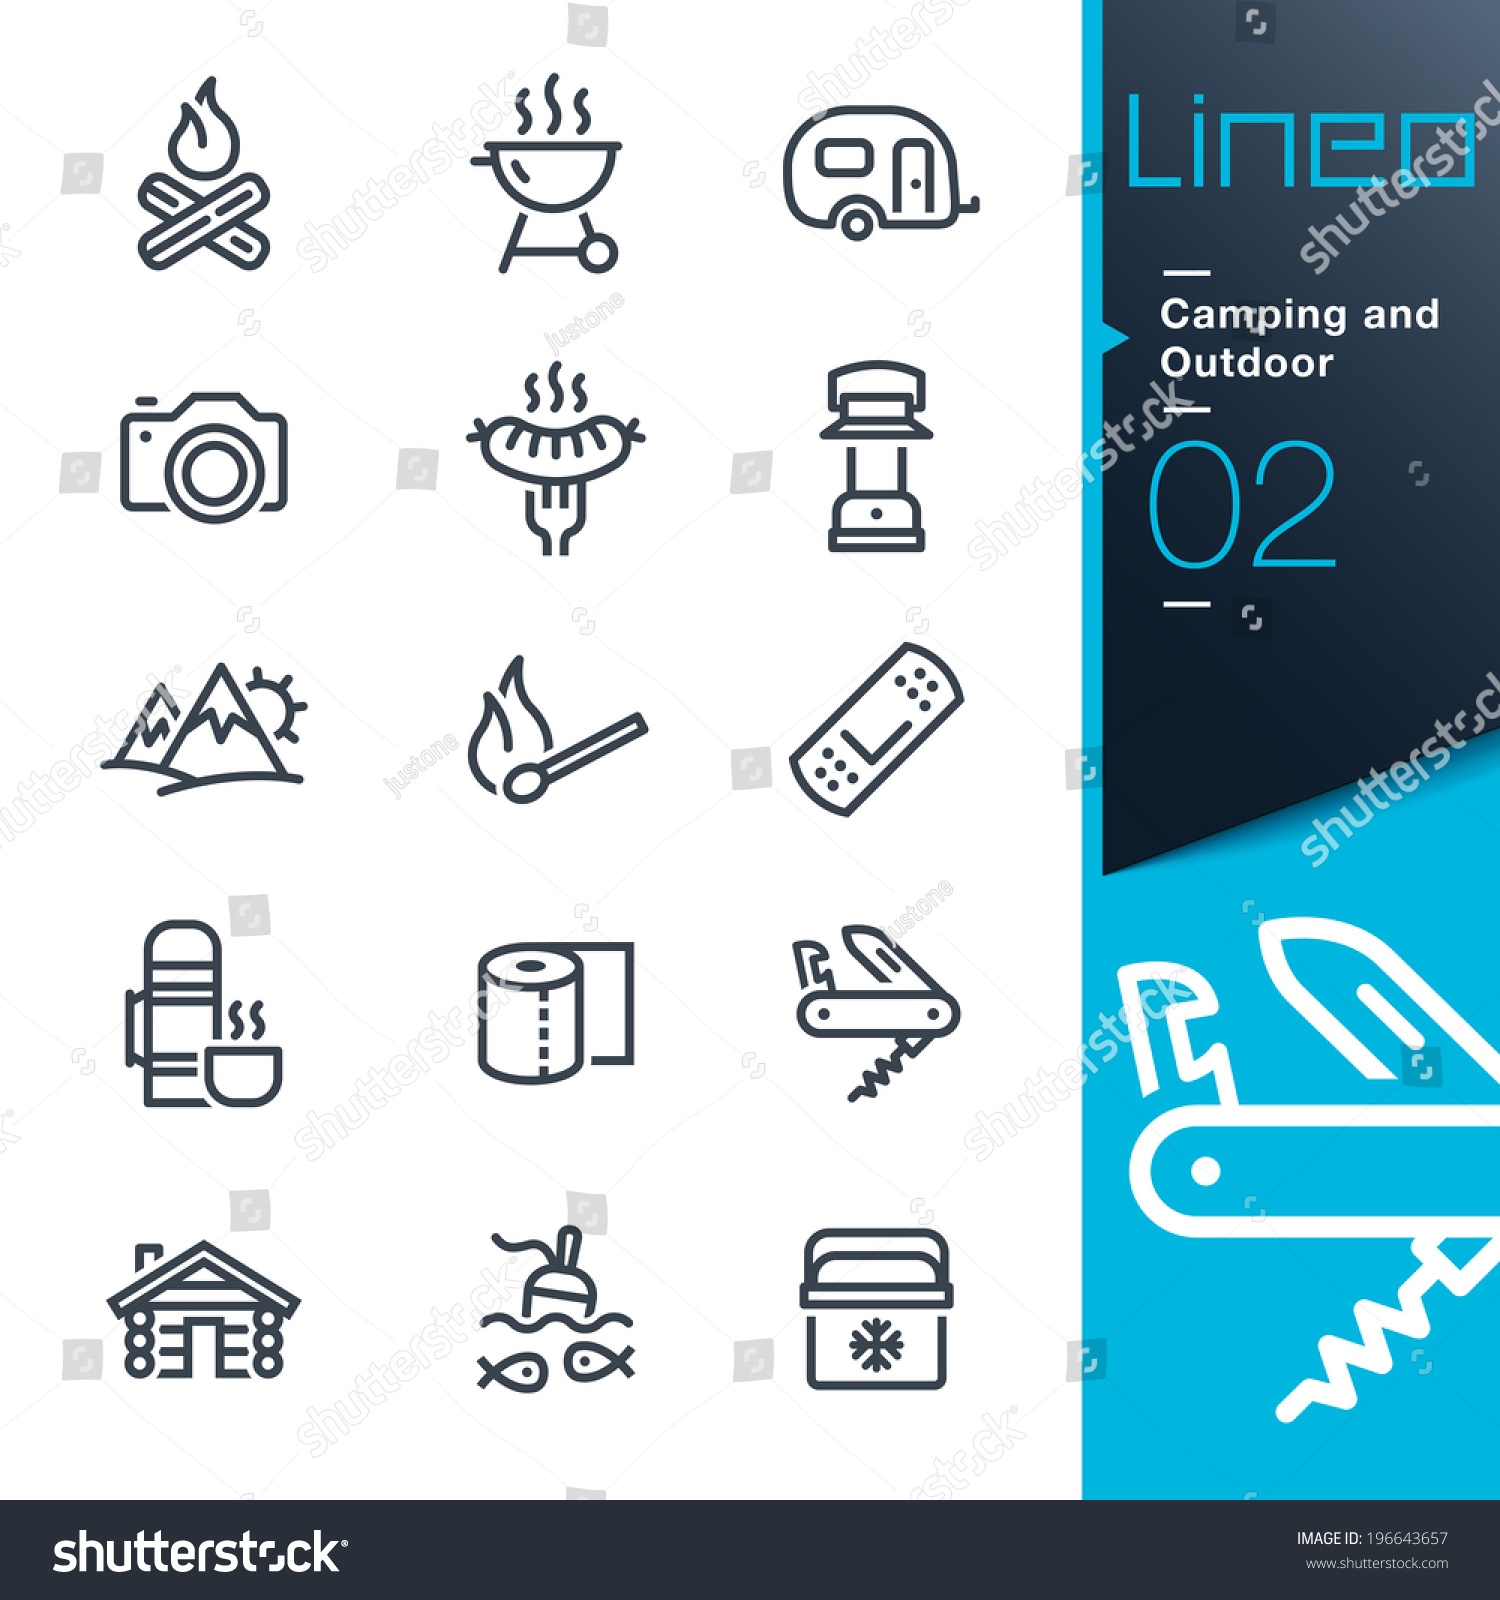 Lineo Camping and Outdoor outline icons